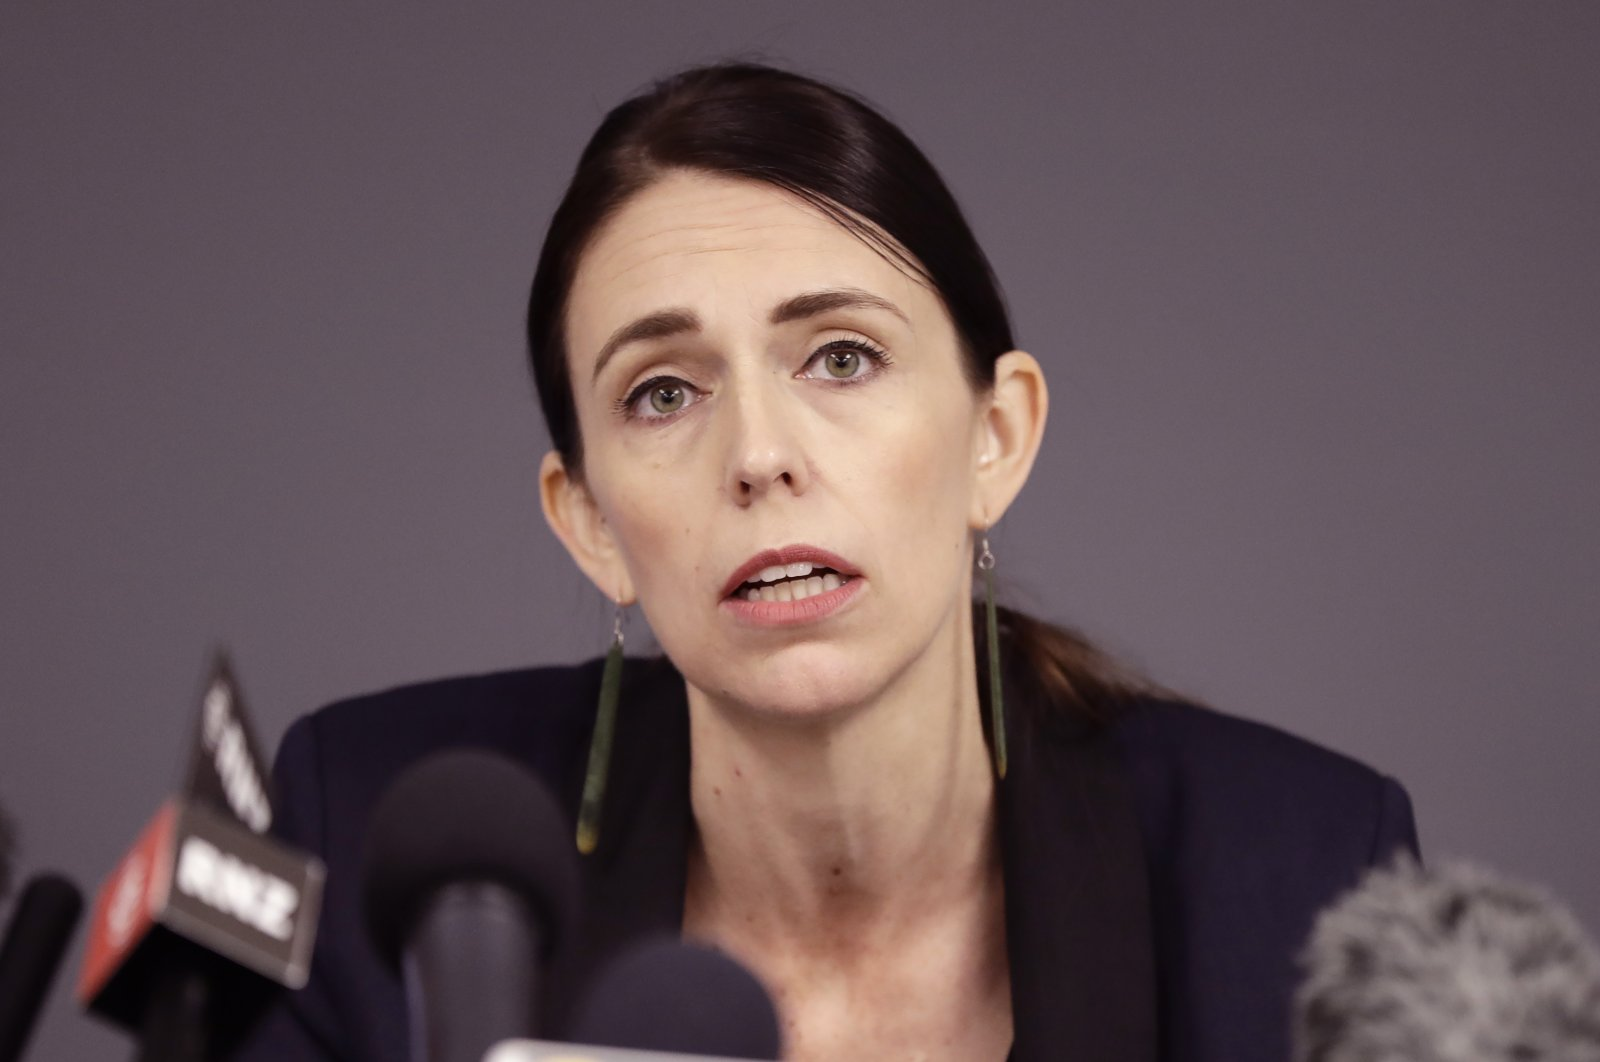 New Zealand Prime Minister Jacinda Ardern holds a news conference in Whakatane, New Zealand, Dec. 10, 2019. (AP Photo)